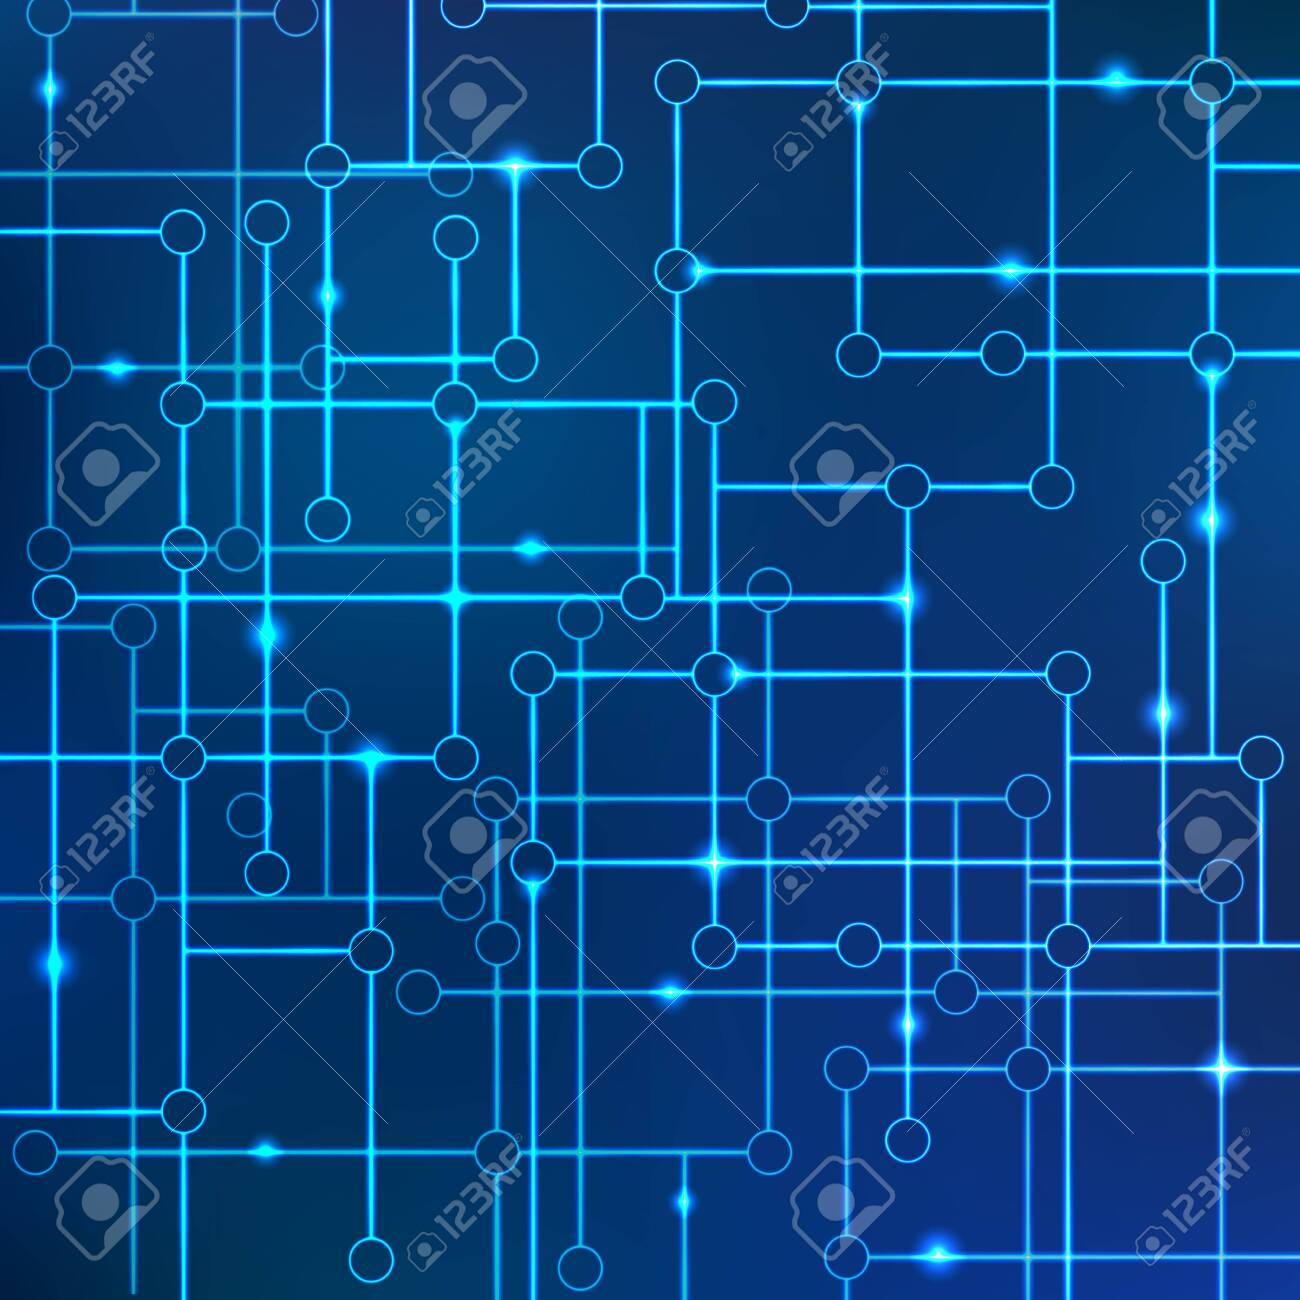 Vector background of lines of connected circles with the effect of neon or glow. Concept of electronic communications and data transfer. Science of technology and computer science. Data array. - 147840051